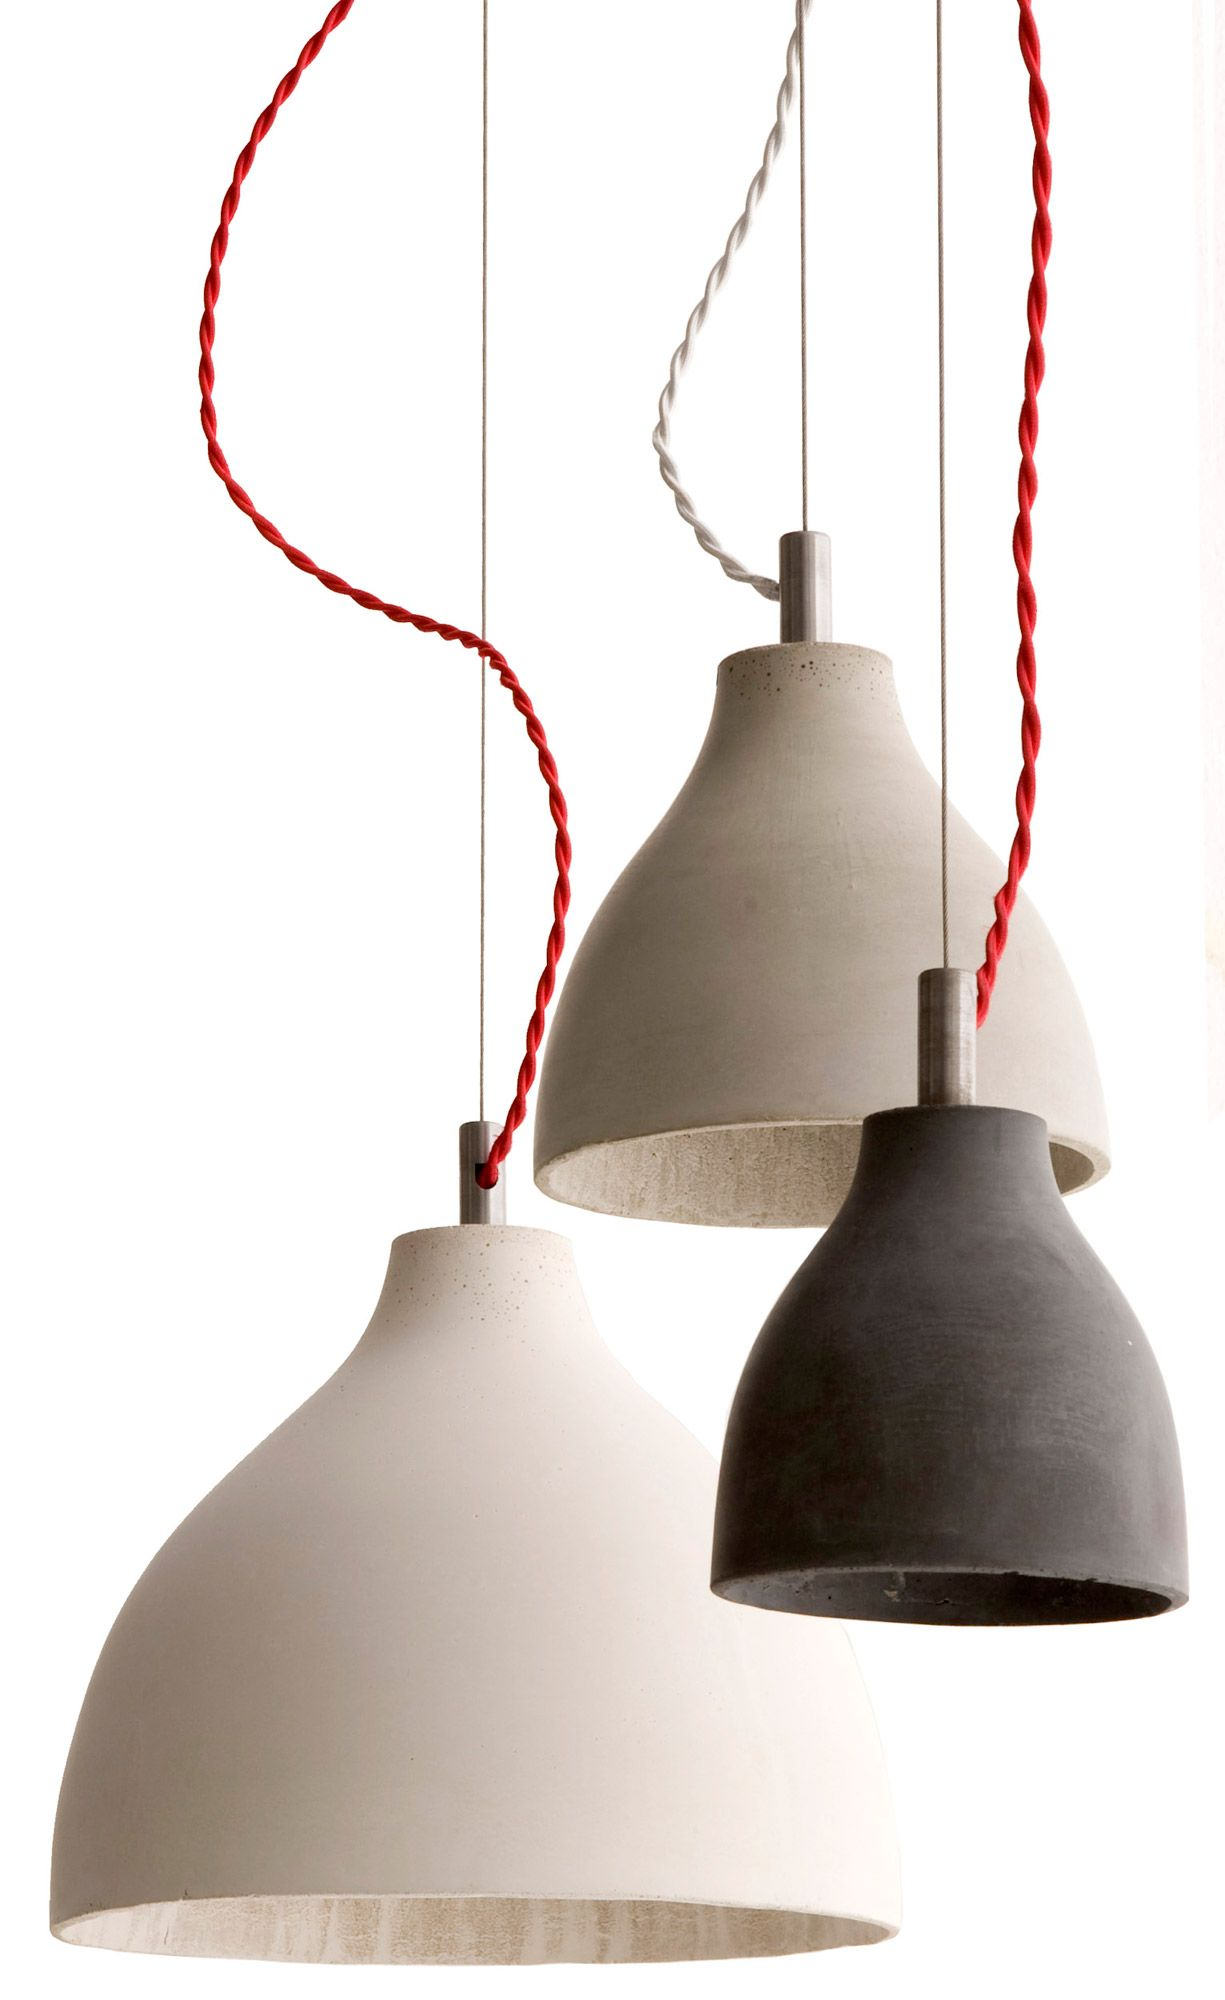 Holloways of ludlow are a leading stockist in the design industry sourcing supplying lighting fixtures fittings furniture bathroom pieces